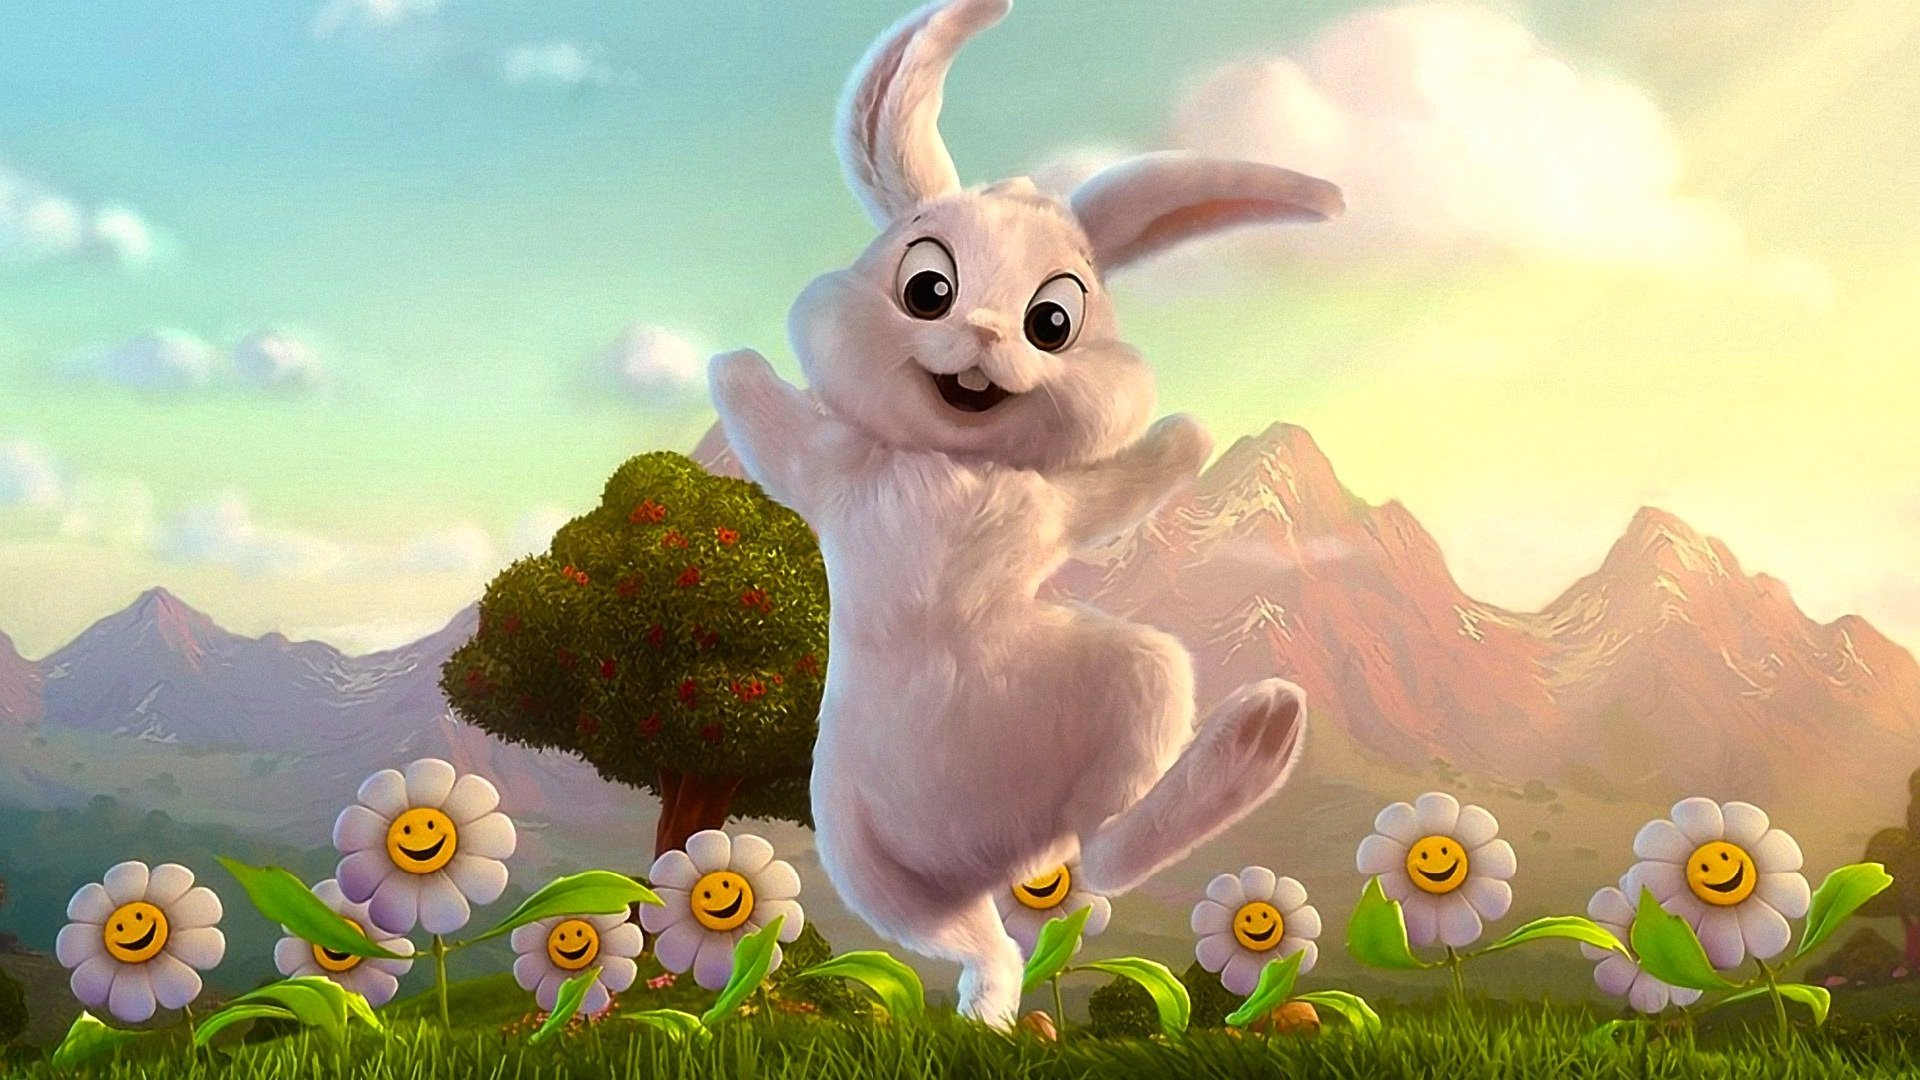 Easter Wallpaper 3   1920 X 1080 stmednet 1920x1080